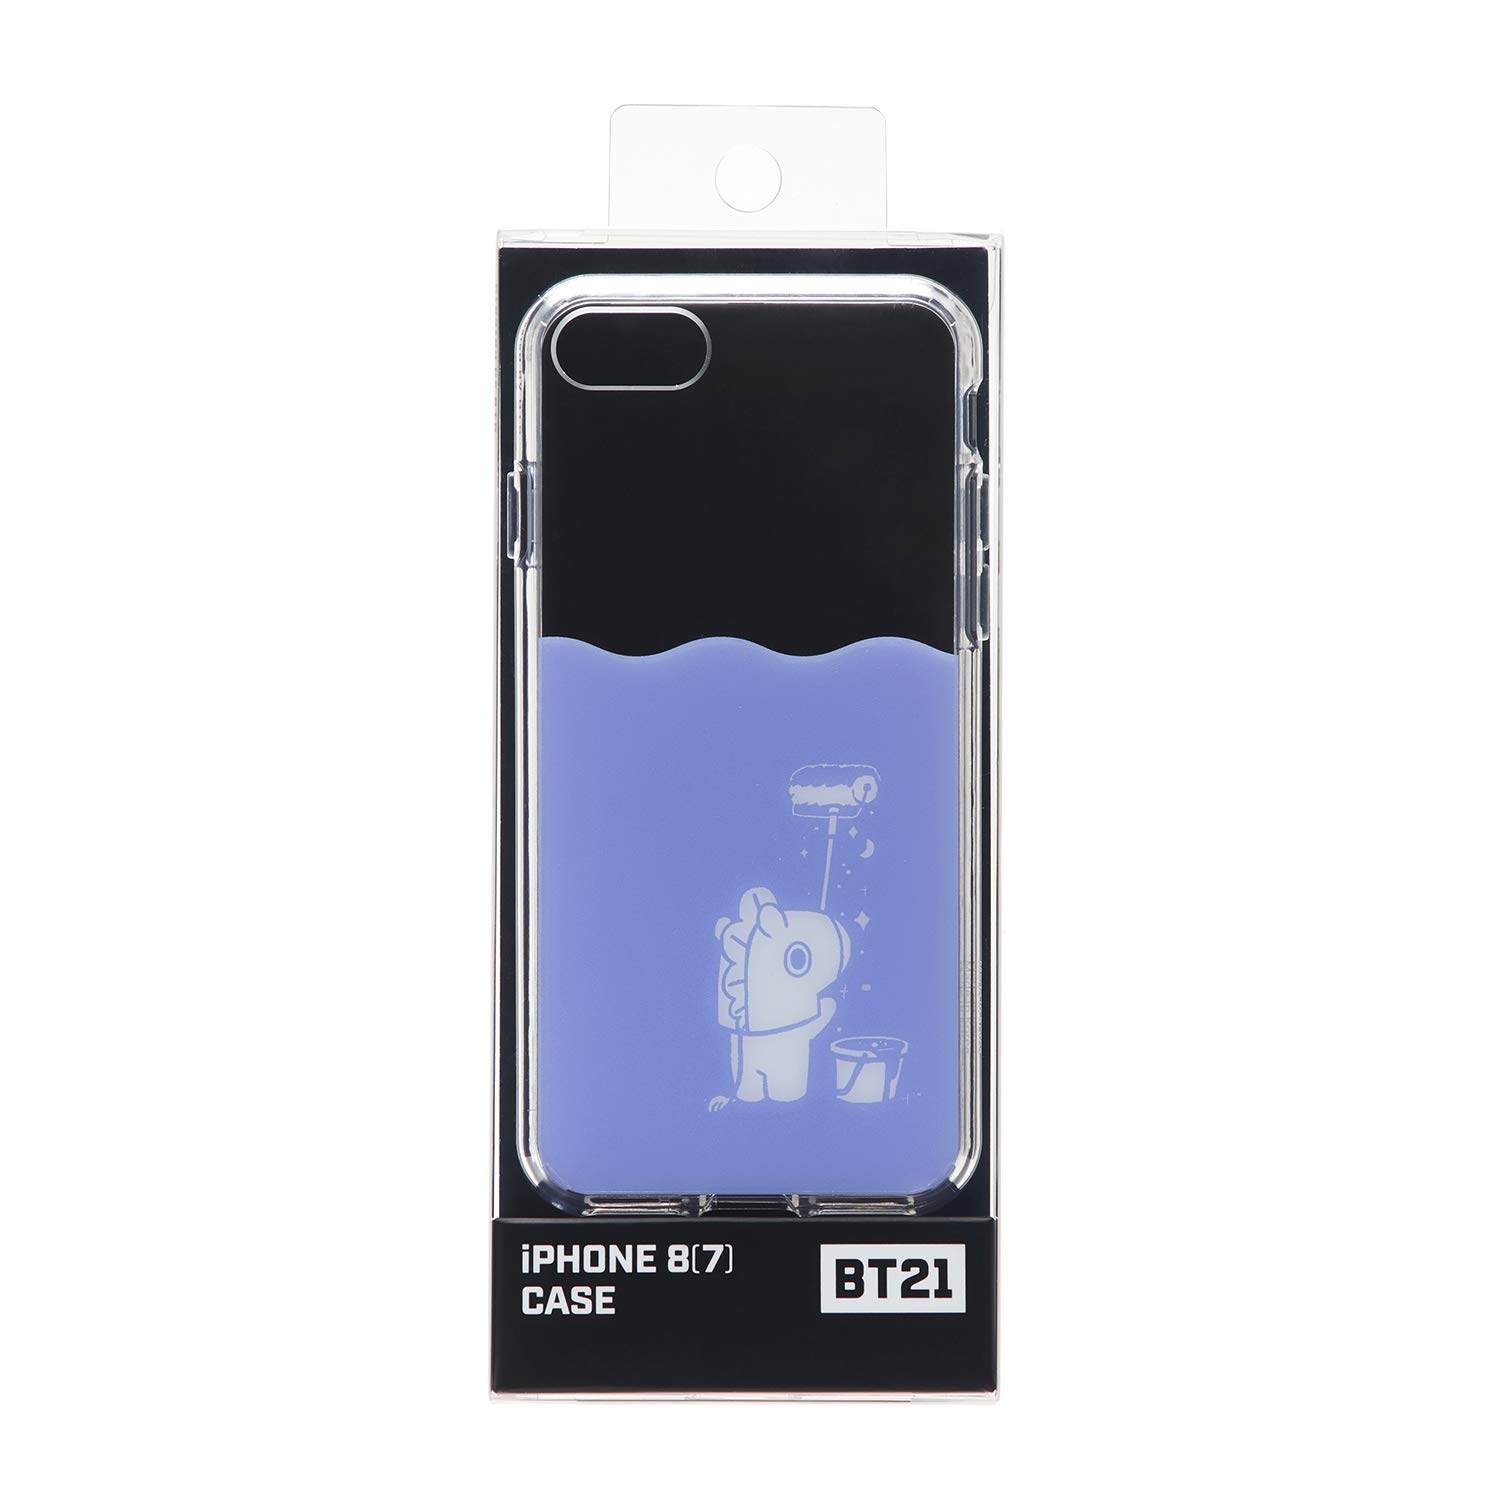 BT21 Official Merchandise by Line Friends - MANG Character Poster Design Drop Protection Case for iPhone 8 / iPhone 7, Blue